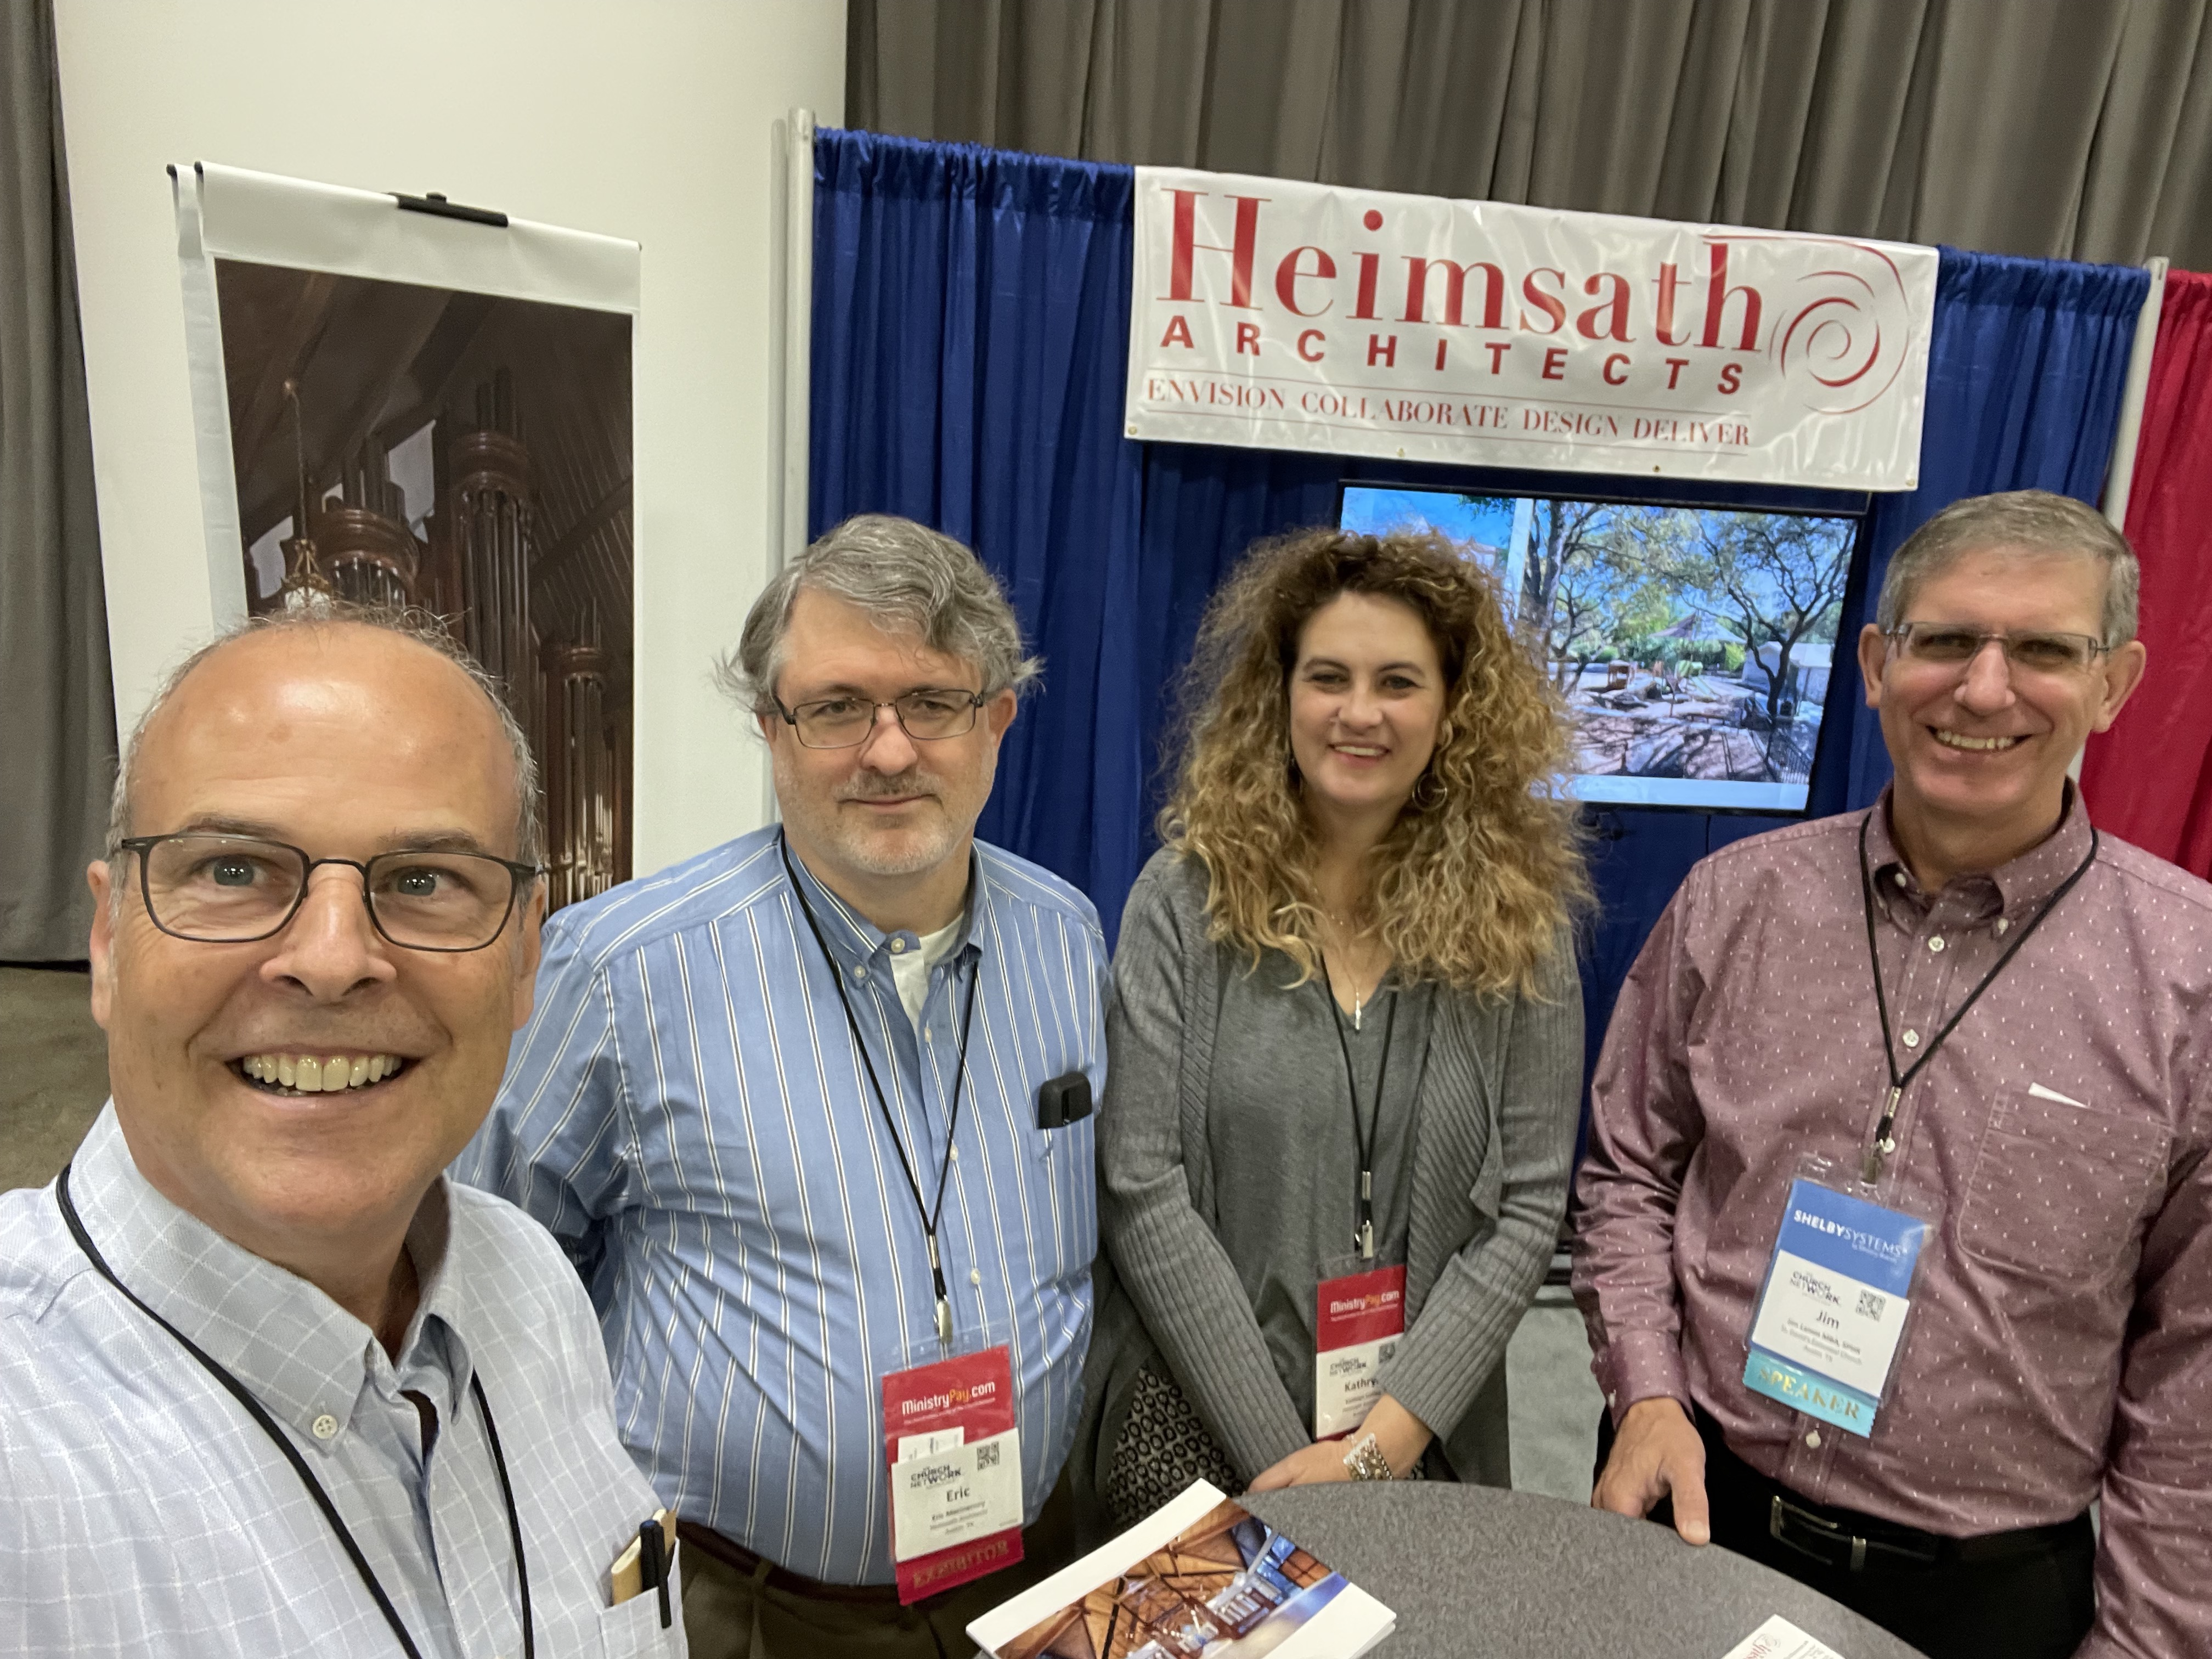 HEIMSATH ARCHITECTS PRESENTS AT 65TH ANNUAL TCN CONFERENCE